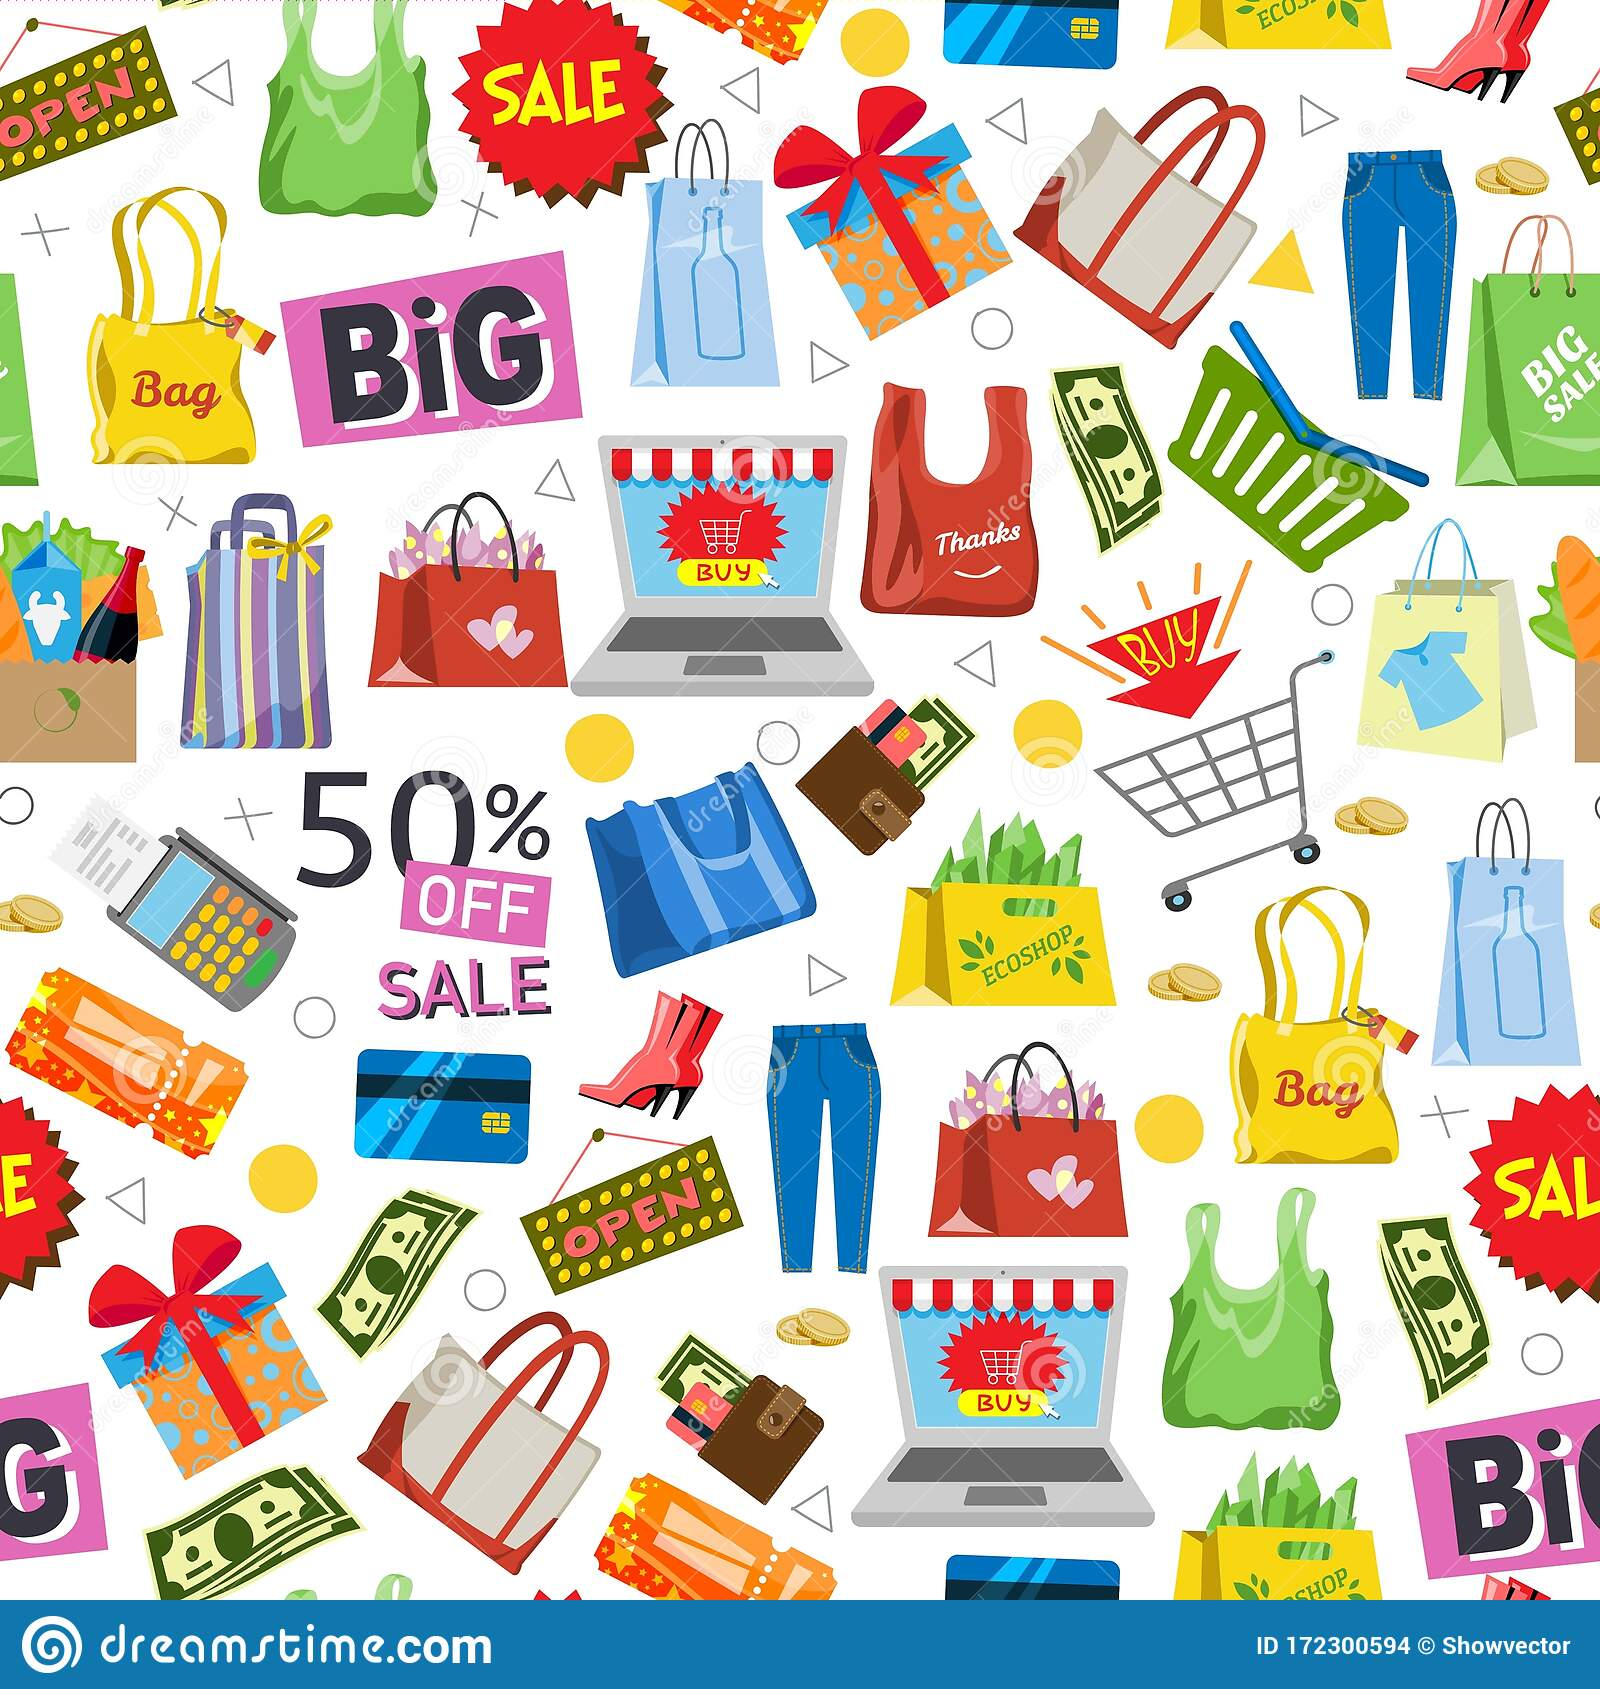 Online Shopping And Sale Items Gifts Shopping Bags Credit Cards And Discount Coupons Cash Money And Laptop Seamless Stock Vector Illustration Of Icons Conceptual 172300594